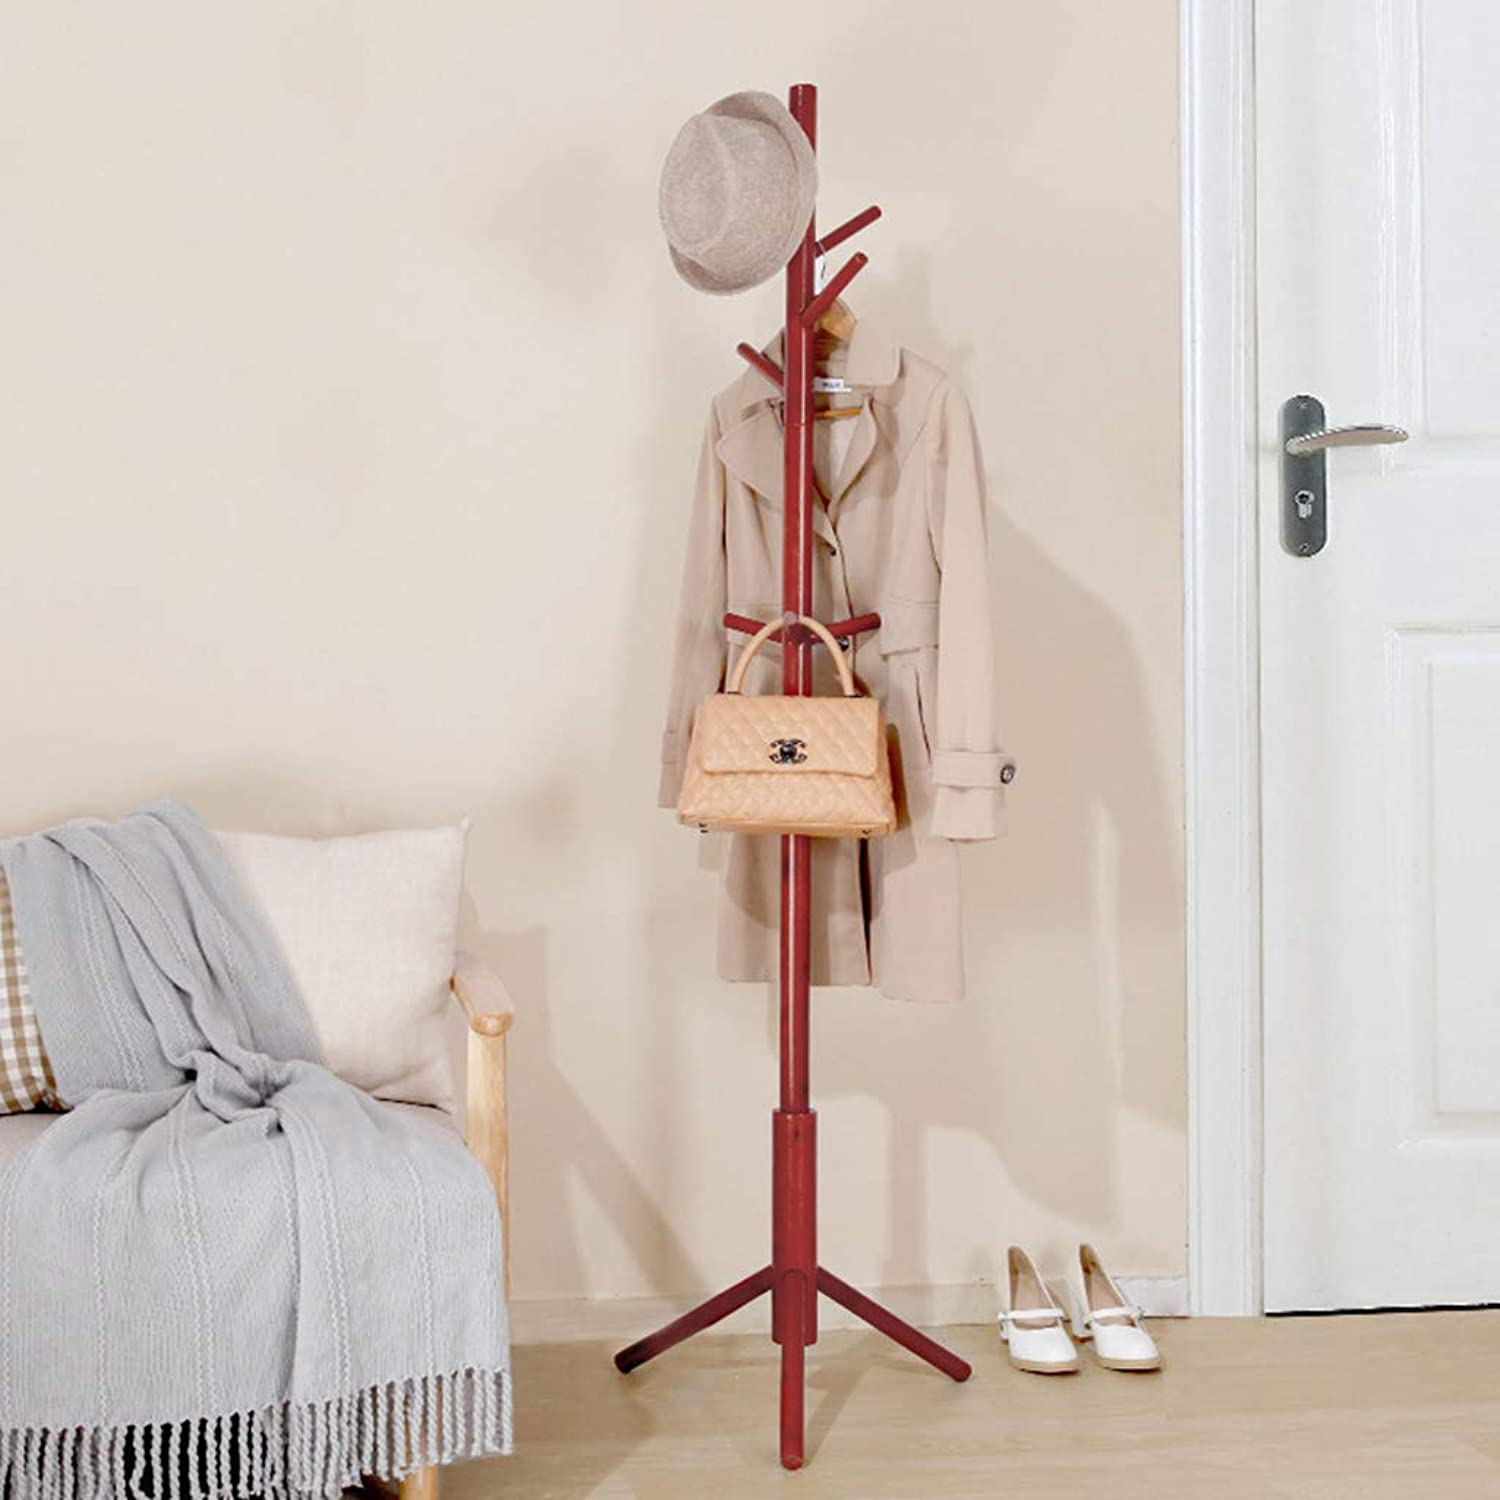 Solid Wood Coat Rack Floor Type Modern Minimalist Bedroom Hanger Living Room Porch Creative Coat Hanging Simple Floor Coat Rack,Brown